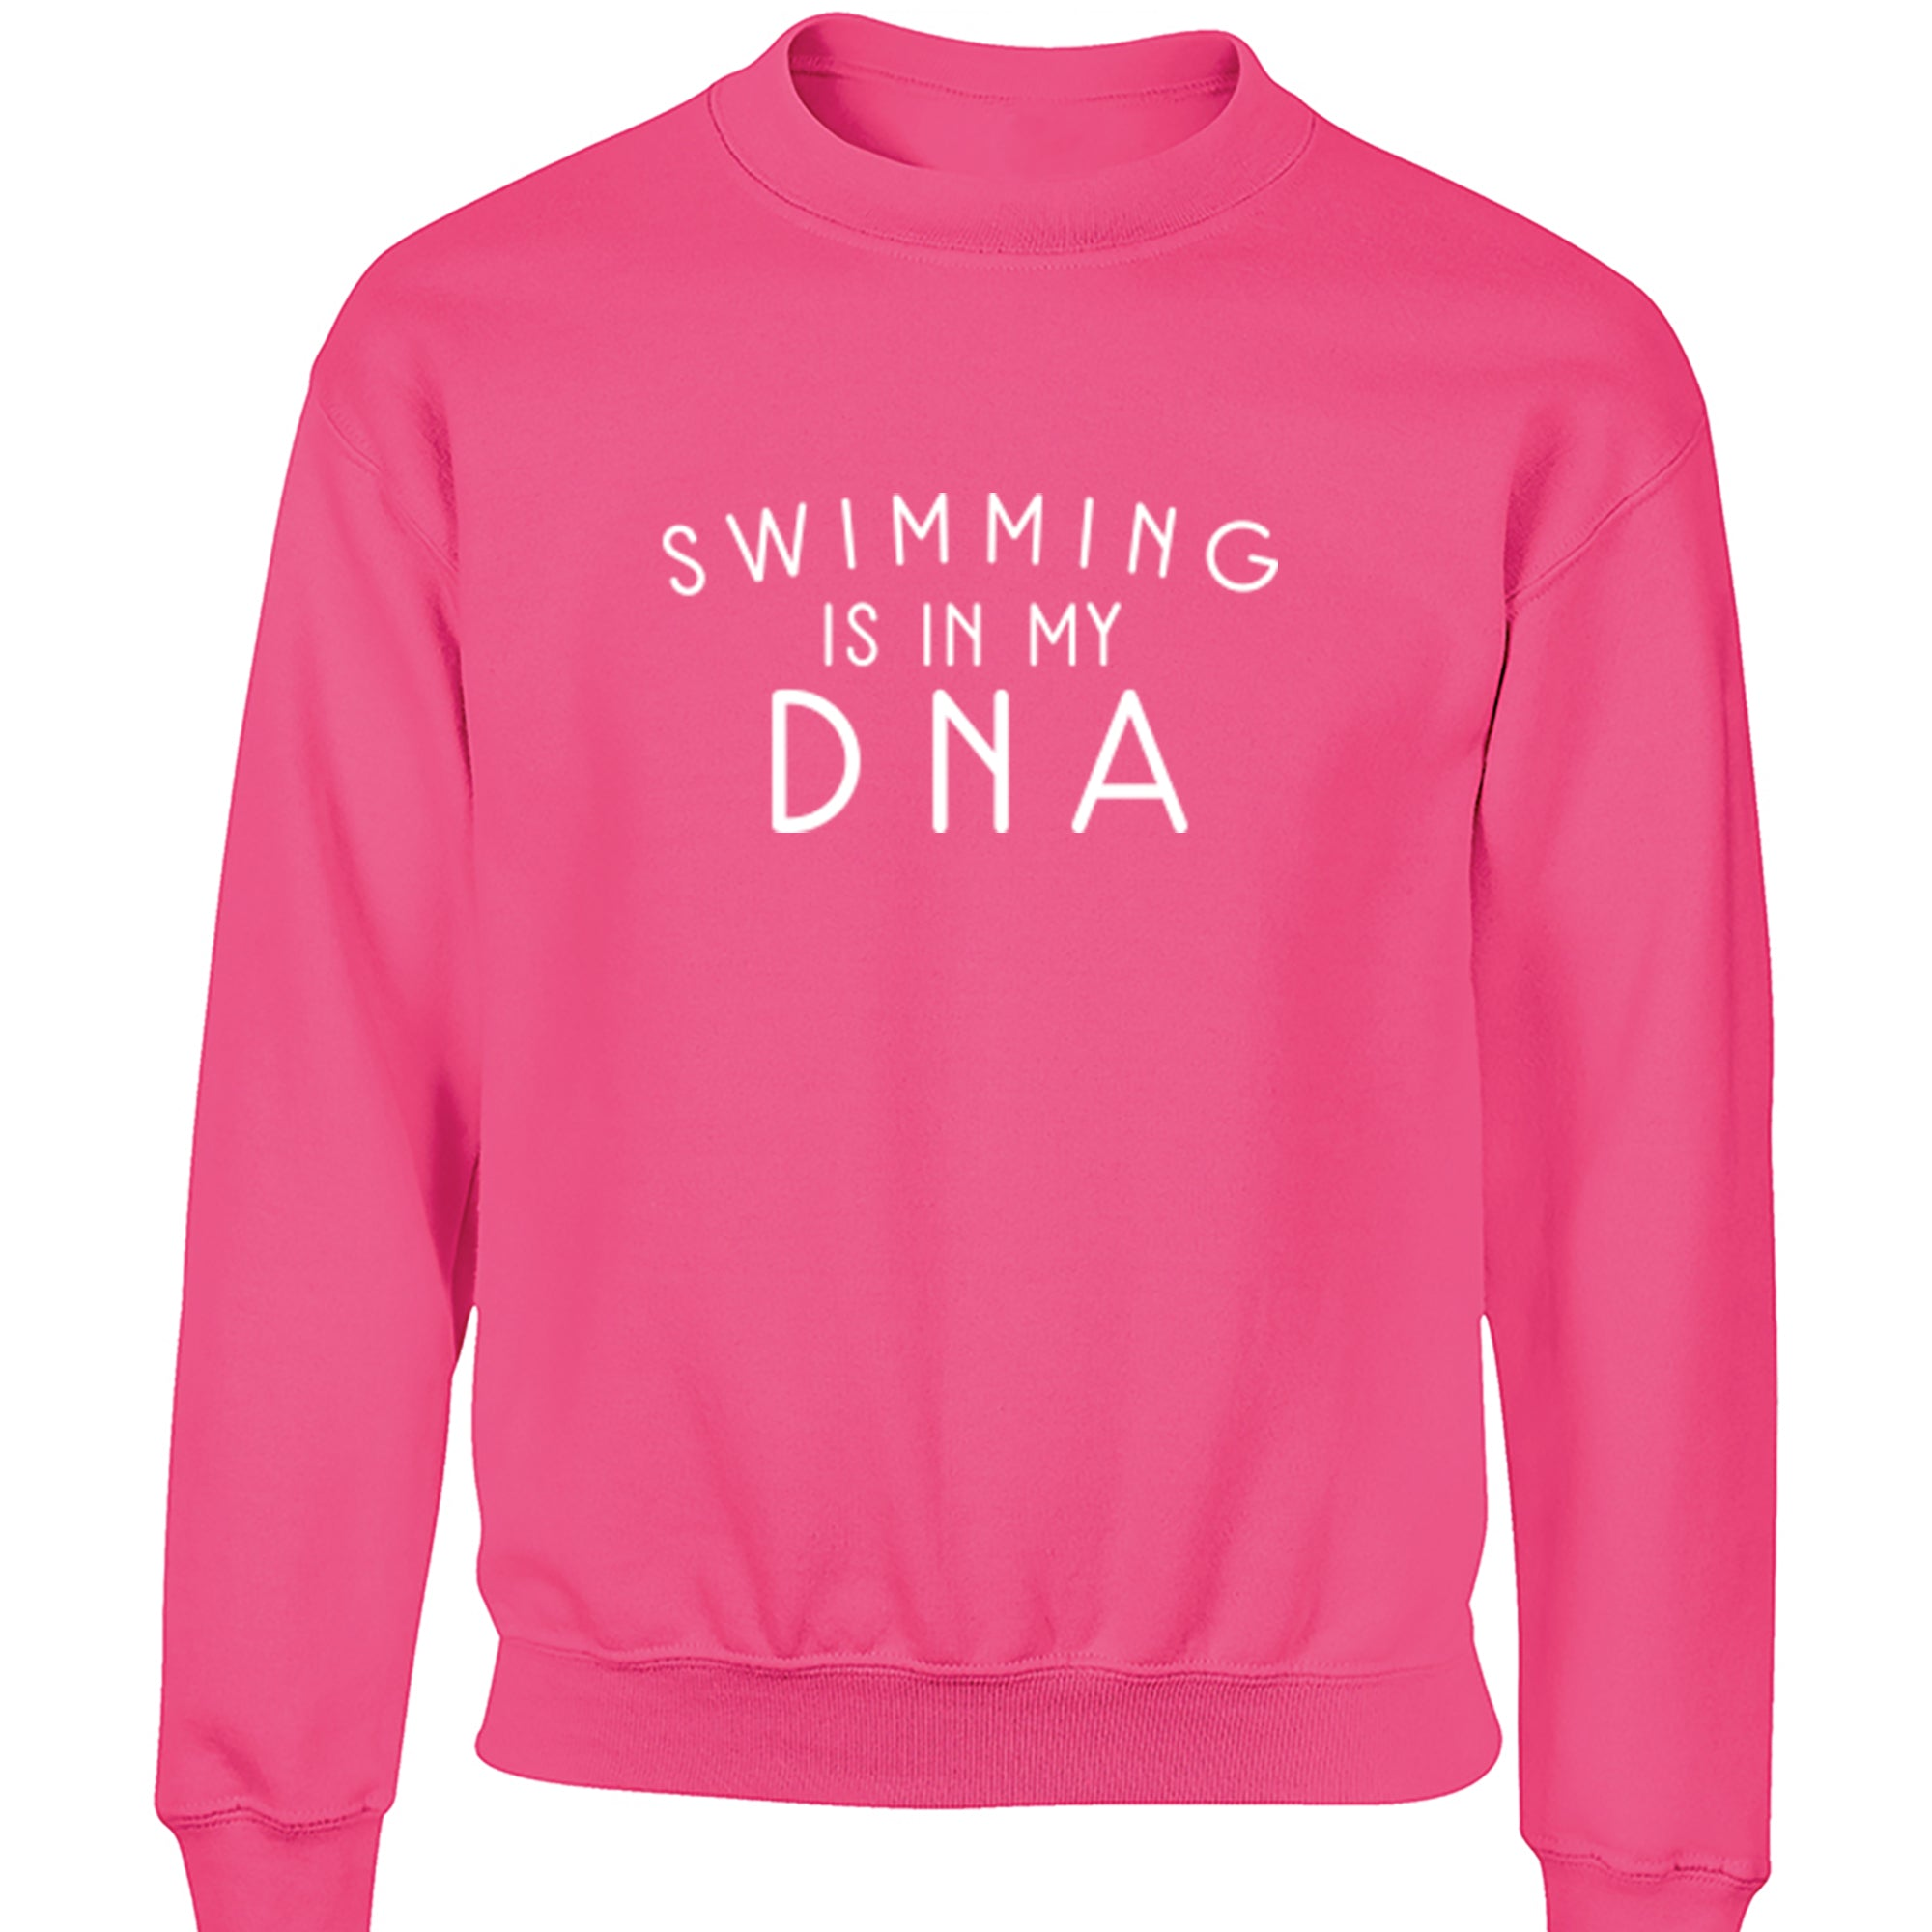 Swimming Is In My DNA Childrens Ages 3/4-12/14 Unisex Jumper S0682 - Illustrated Identity Ltd.